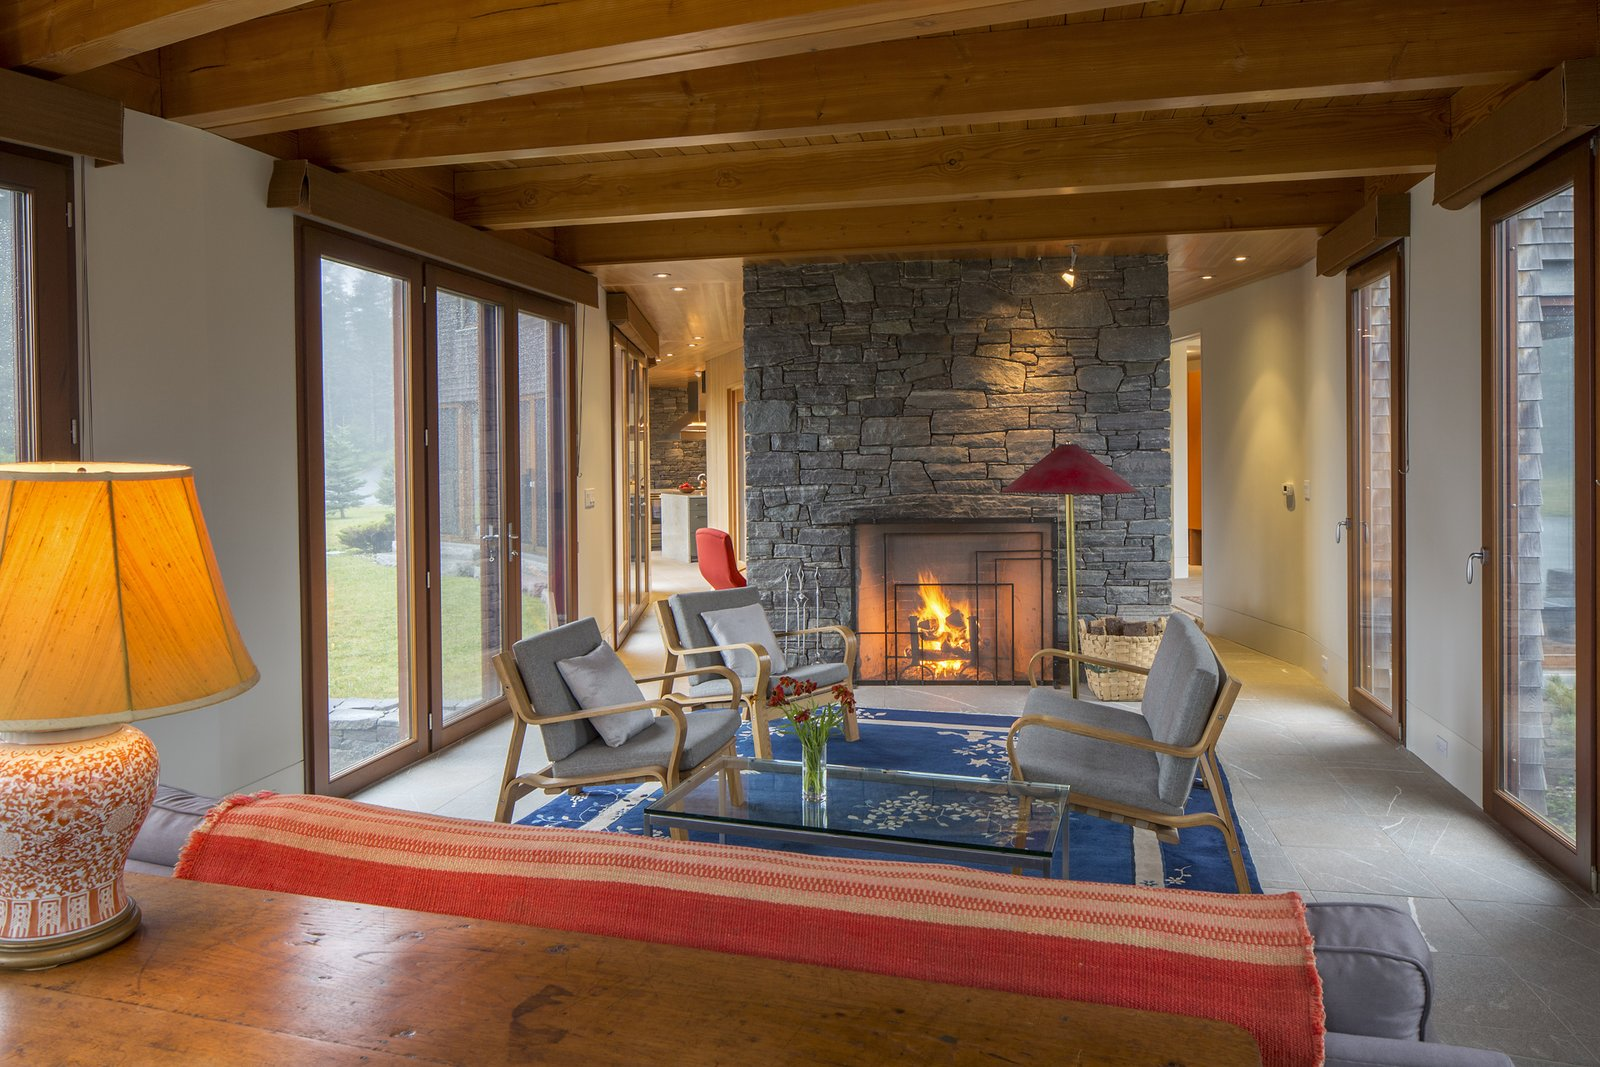 Living Room, Coffee Tables, Sofa, Chair, Lamps, Ceiling Lighting, Floor Lighting, Table Lighting, Table, Limestone Floor, and Wood Burning Fireplace Living room from the south  Deep Cove House by Elliott + Elliott Architecture